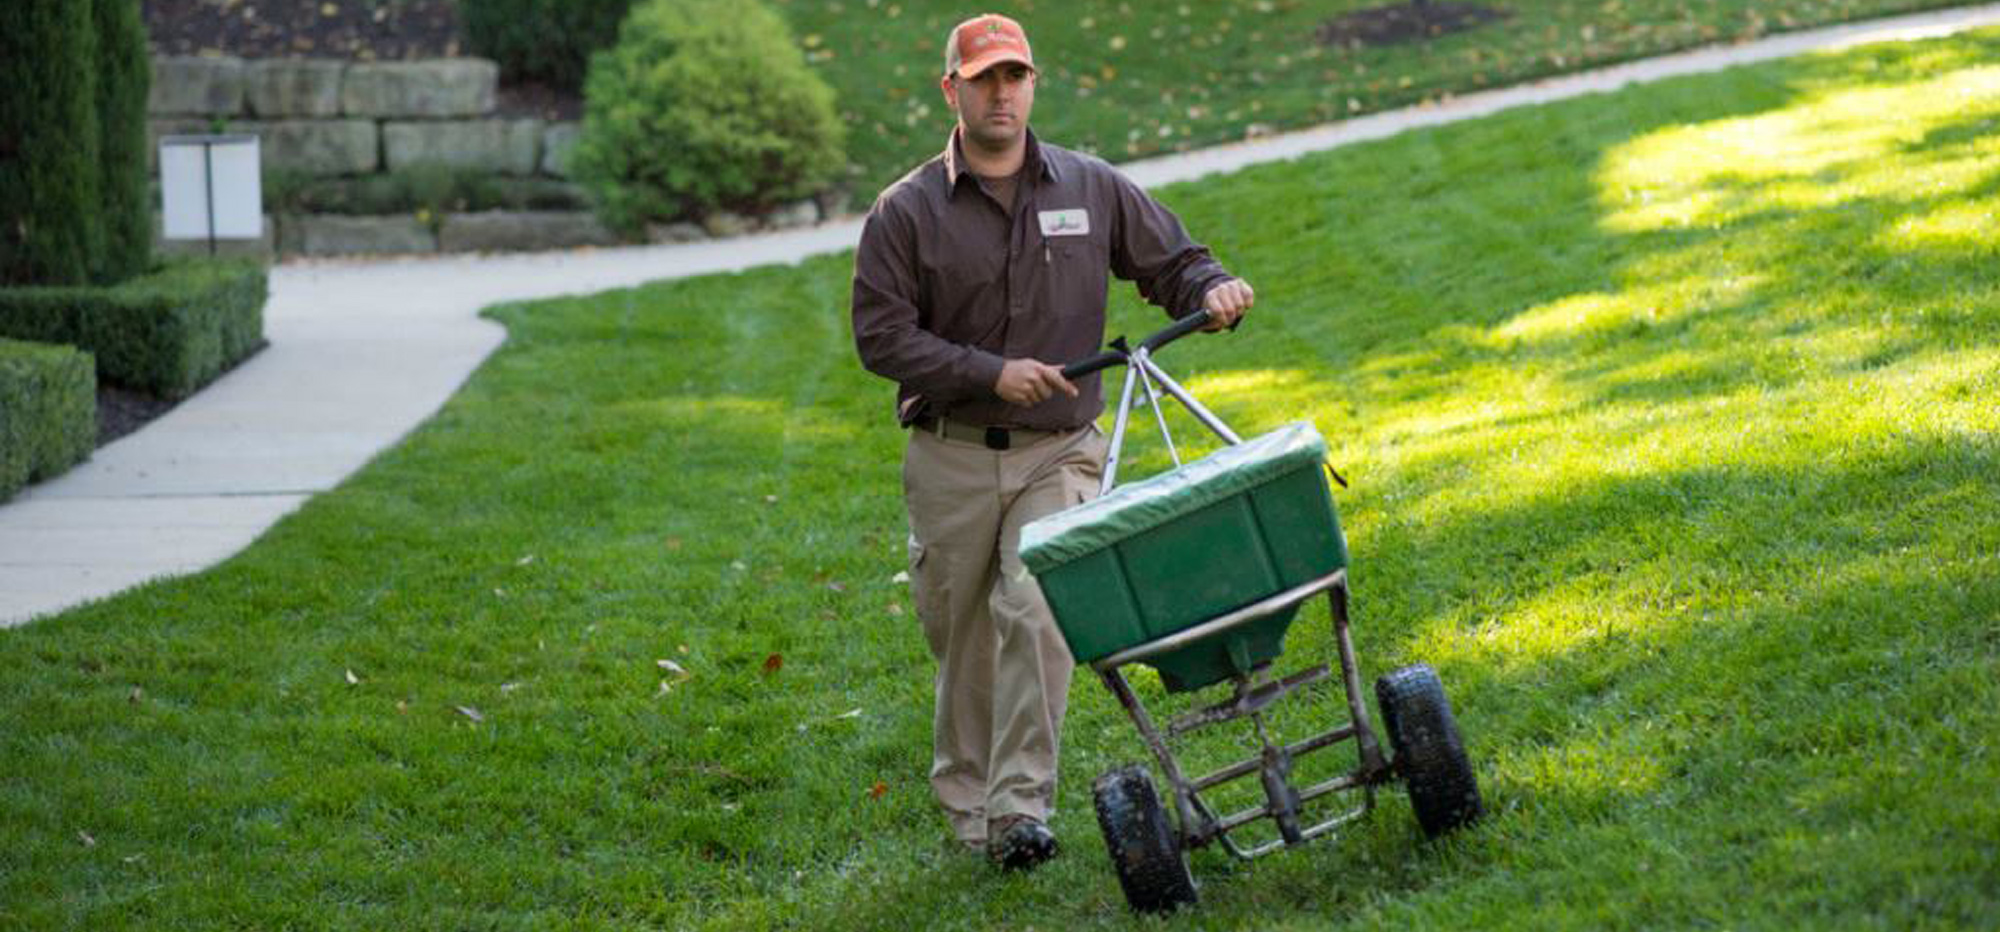 Fall Lawn Care For The Kansas City Area By The Blade